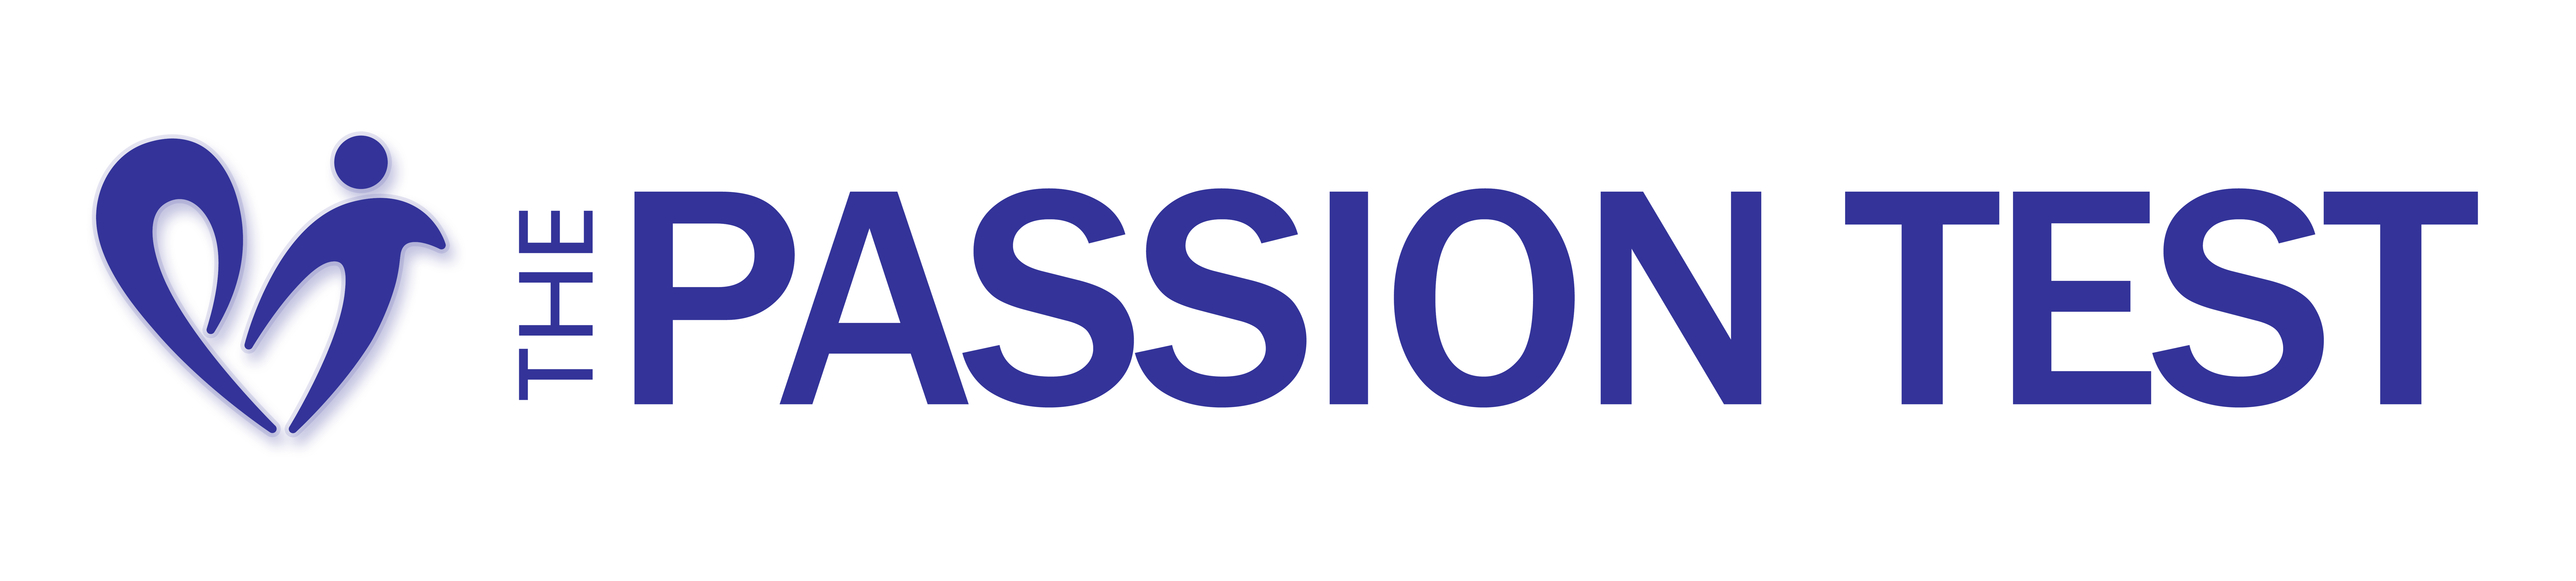 The Passion Test logo